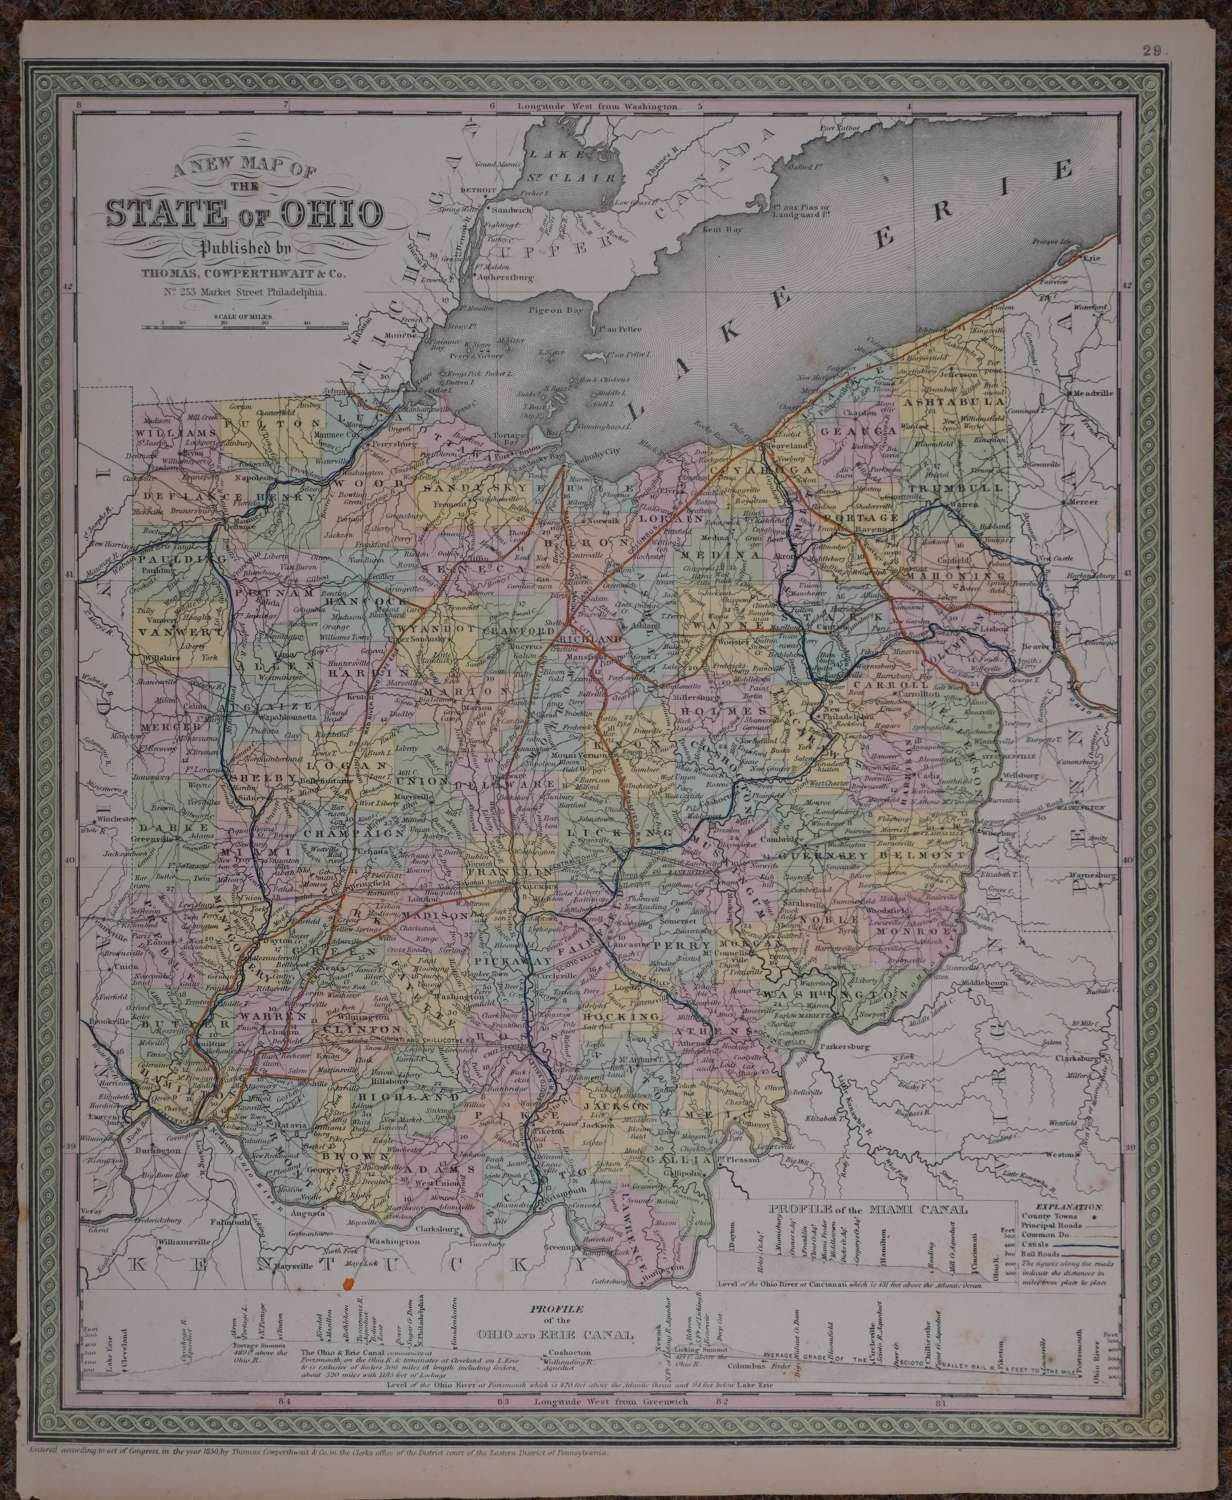 A New Map of the State of Ohio by Thomas Cowperthwait & Co